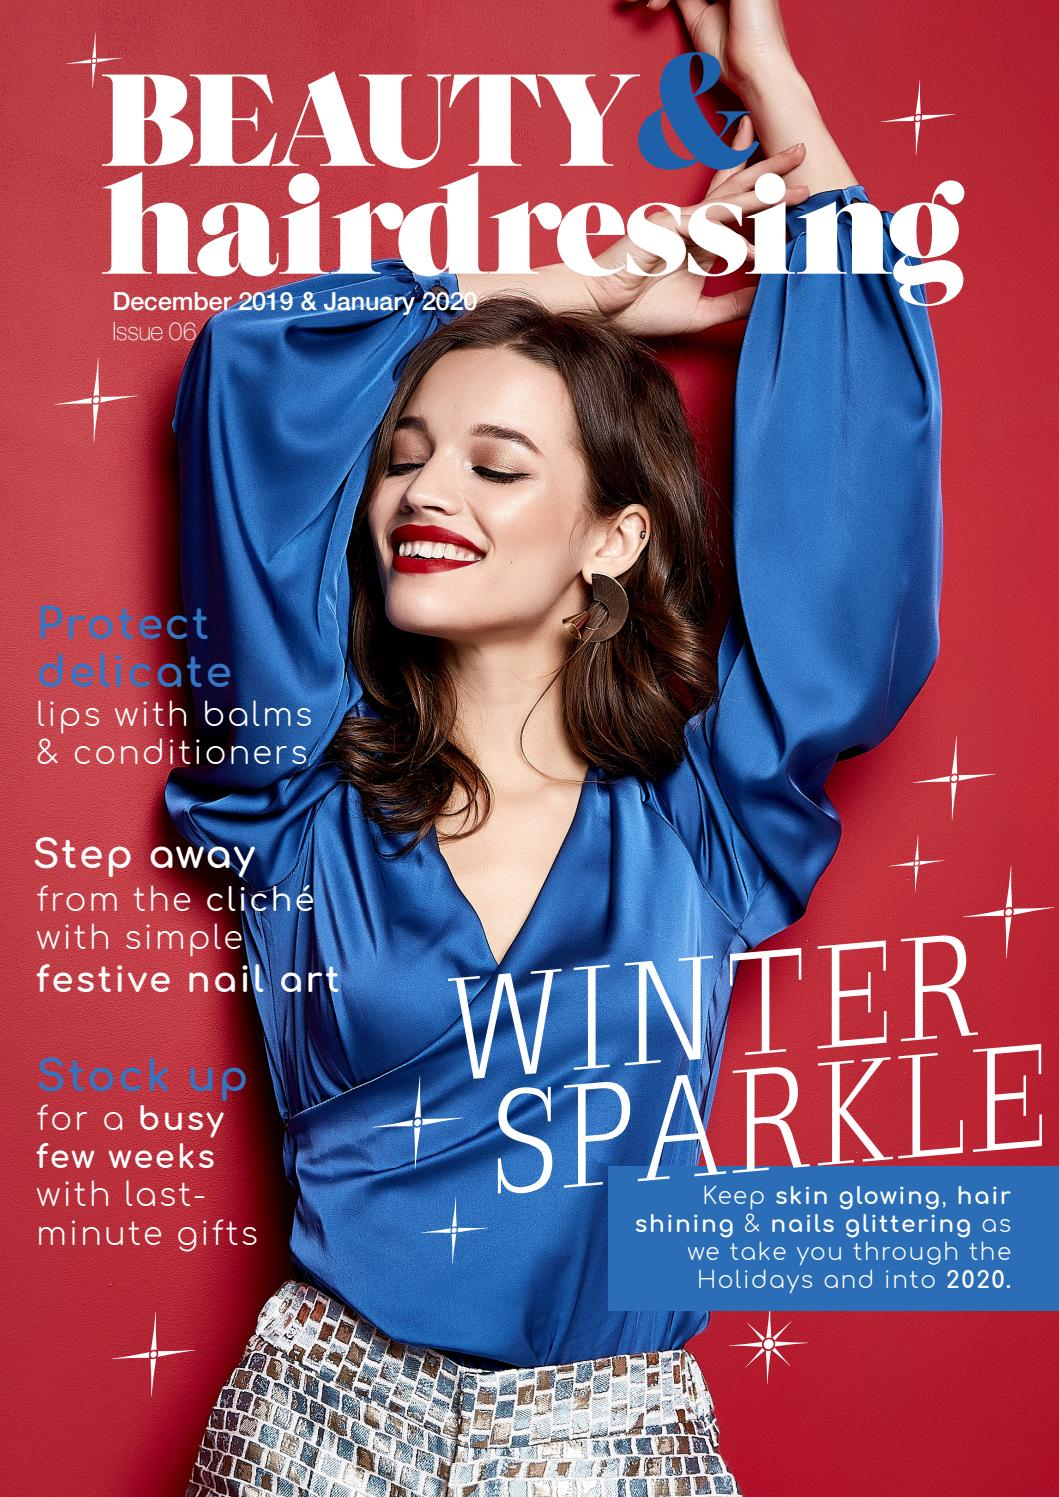 Beauty Hairdressing Magazine December 2019 January 2020 By